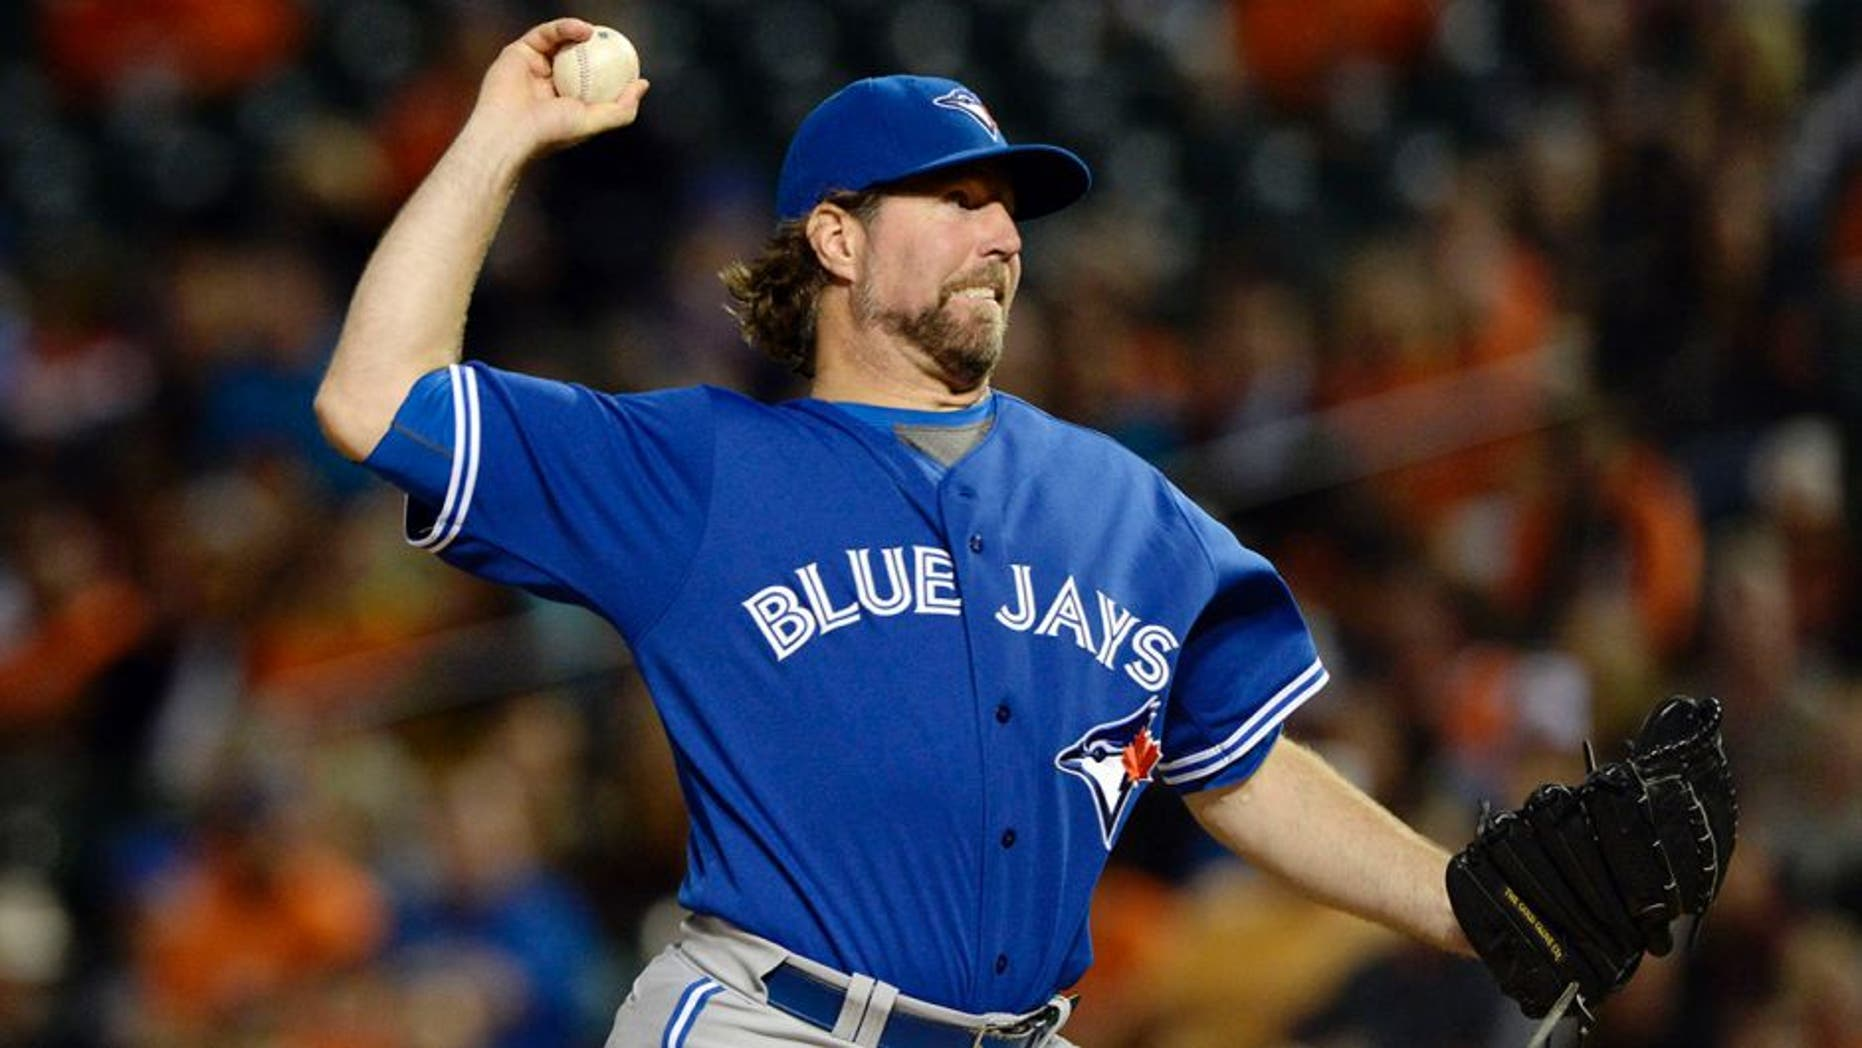 Sep 30, 2015; Baltimore, MD, USA; Toronto Blue Jays starting pitcher R.A. Dickey (43) pitches during the third inning against the Baltimore Orioles at Oriole Park at Camden Yards. Mandatory Credit: Tommy Gilligan-USA TODAY Sports